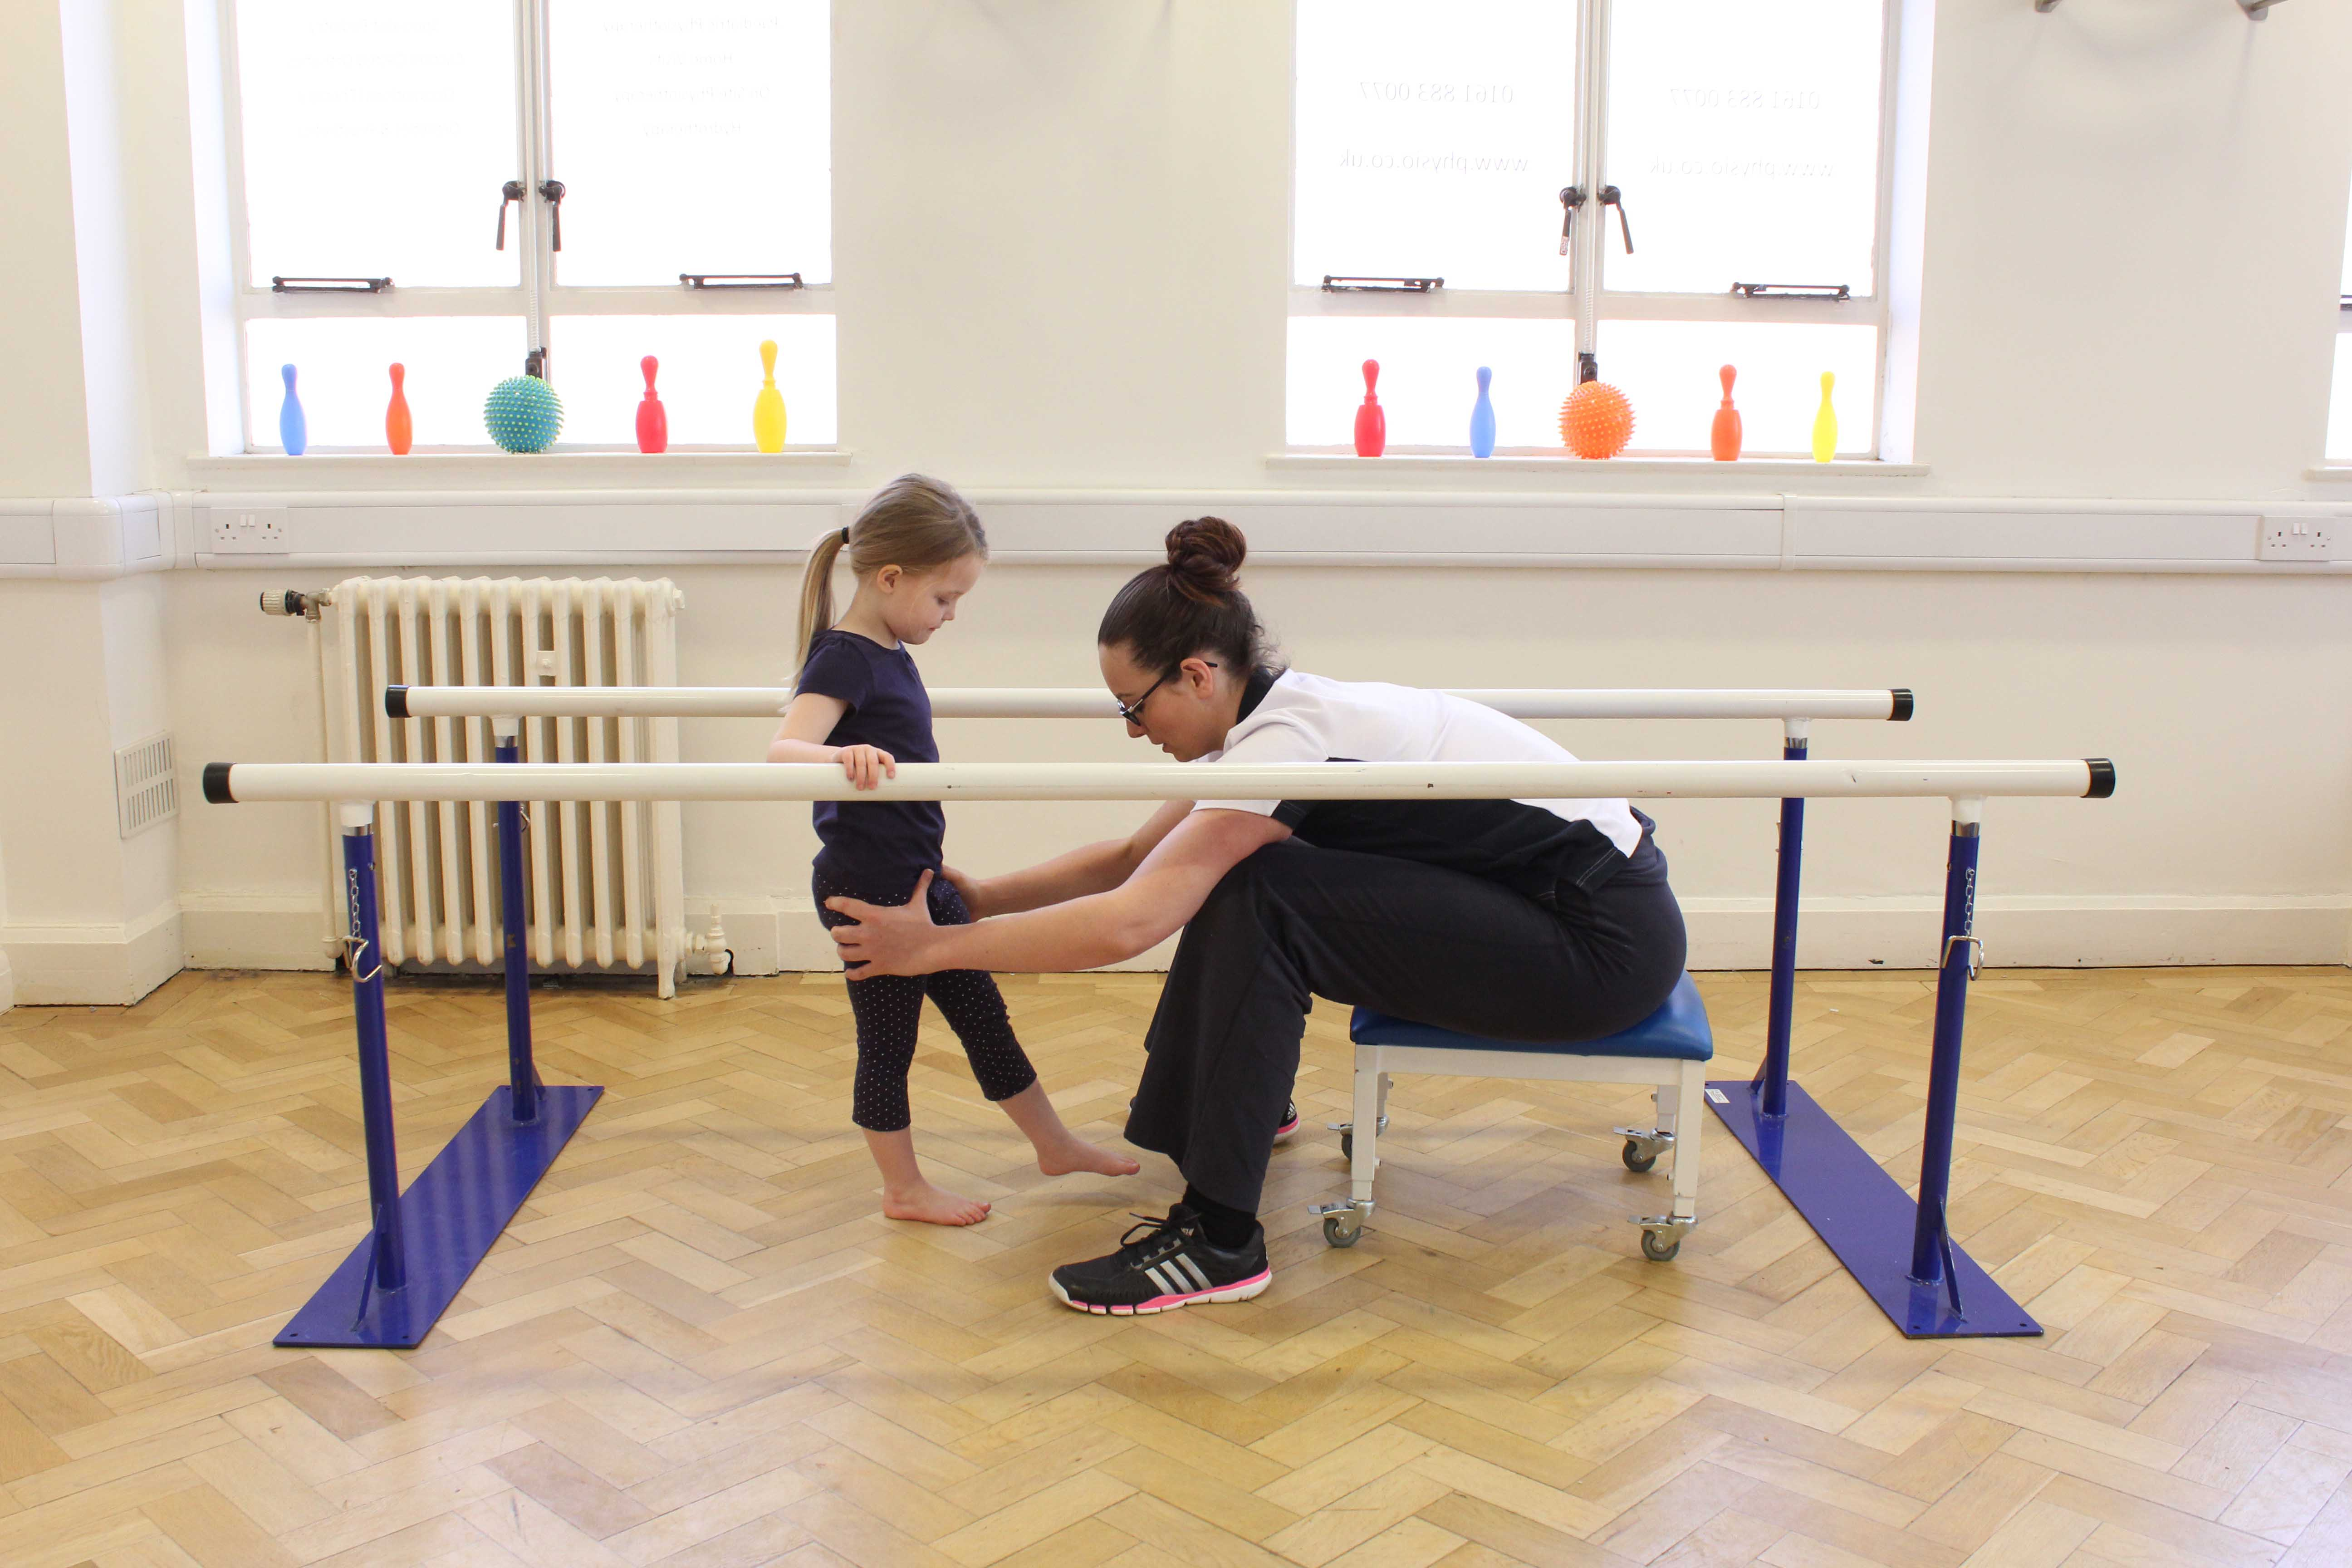 Gait re-education using the parallel bars under close supervision of specilist Paediatric Physiotherapist